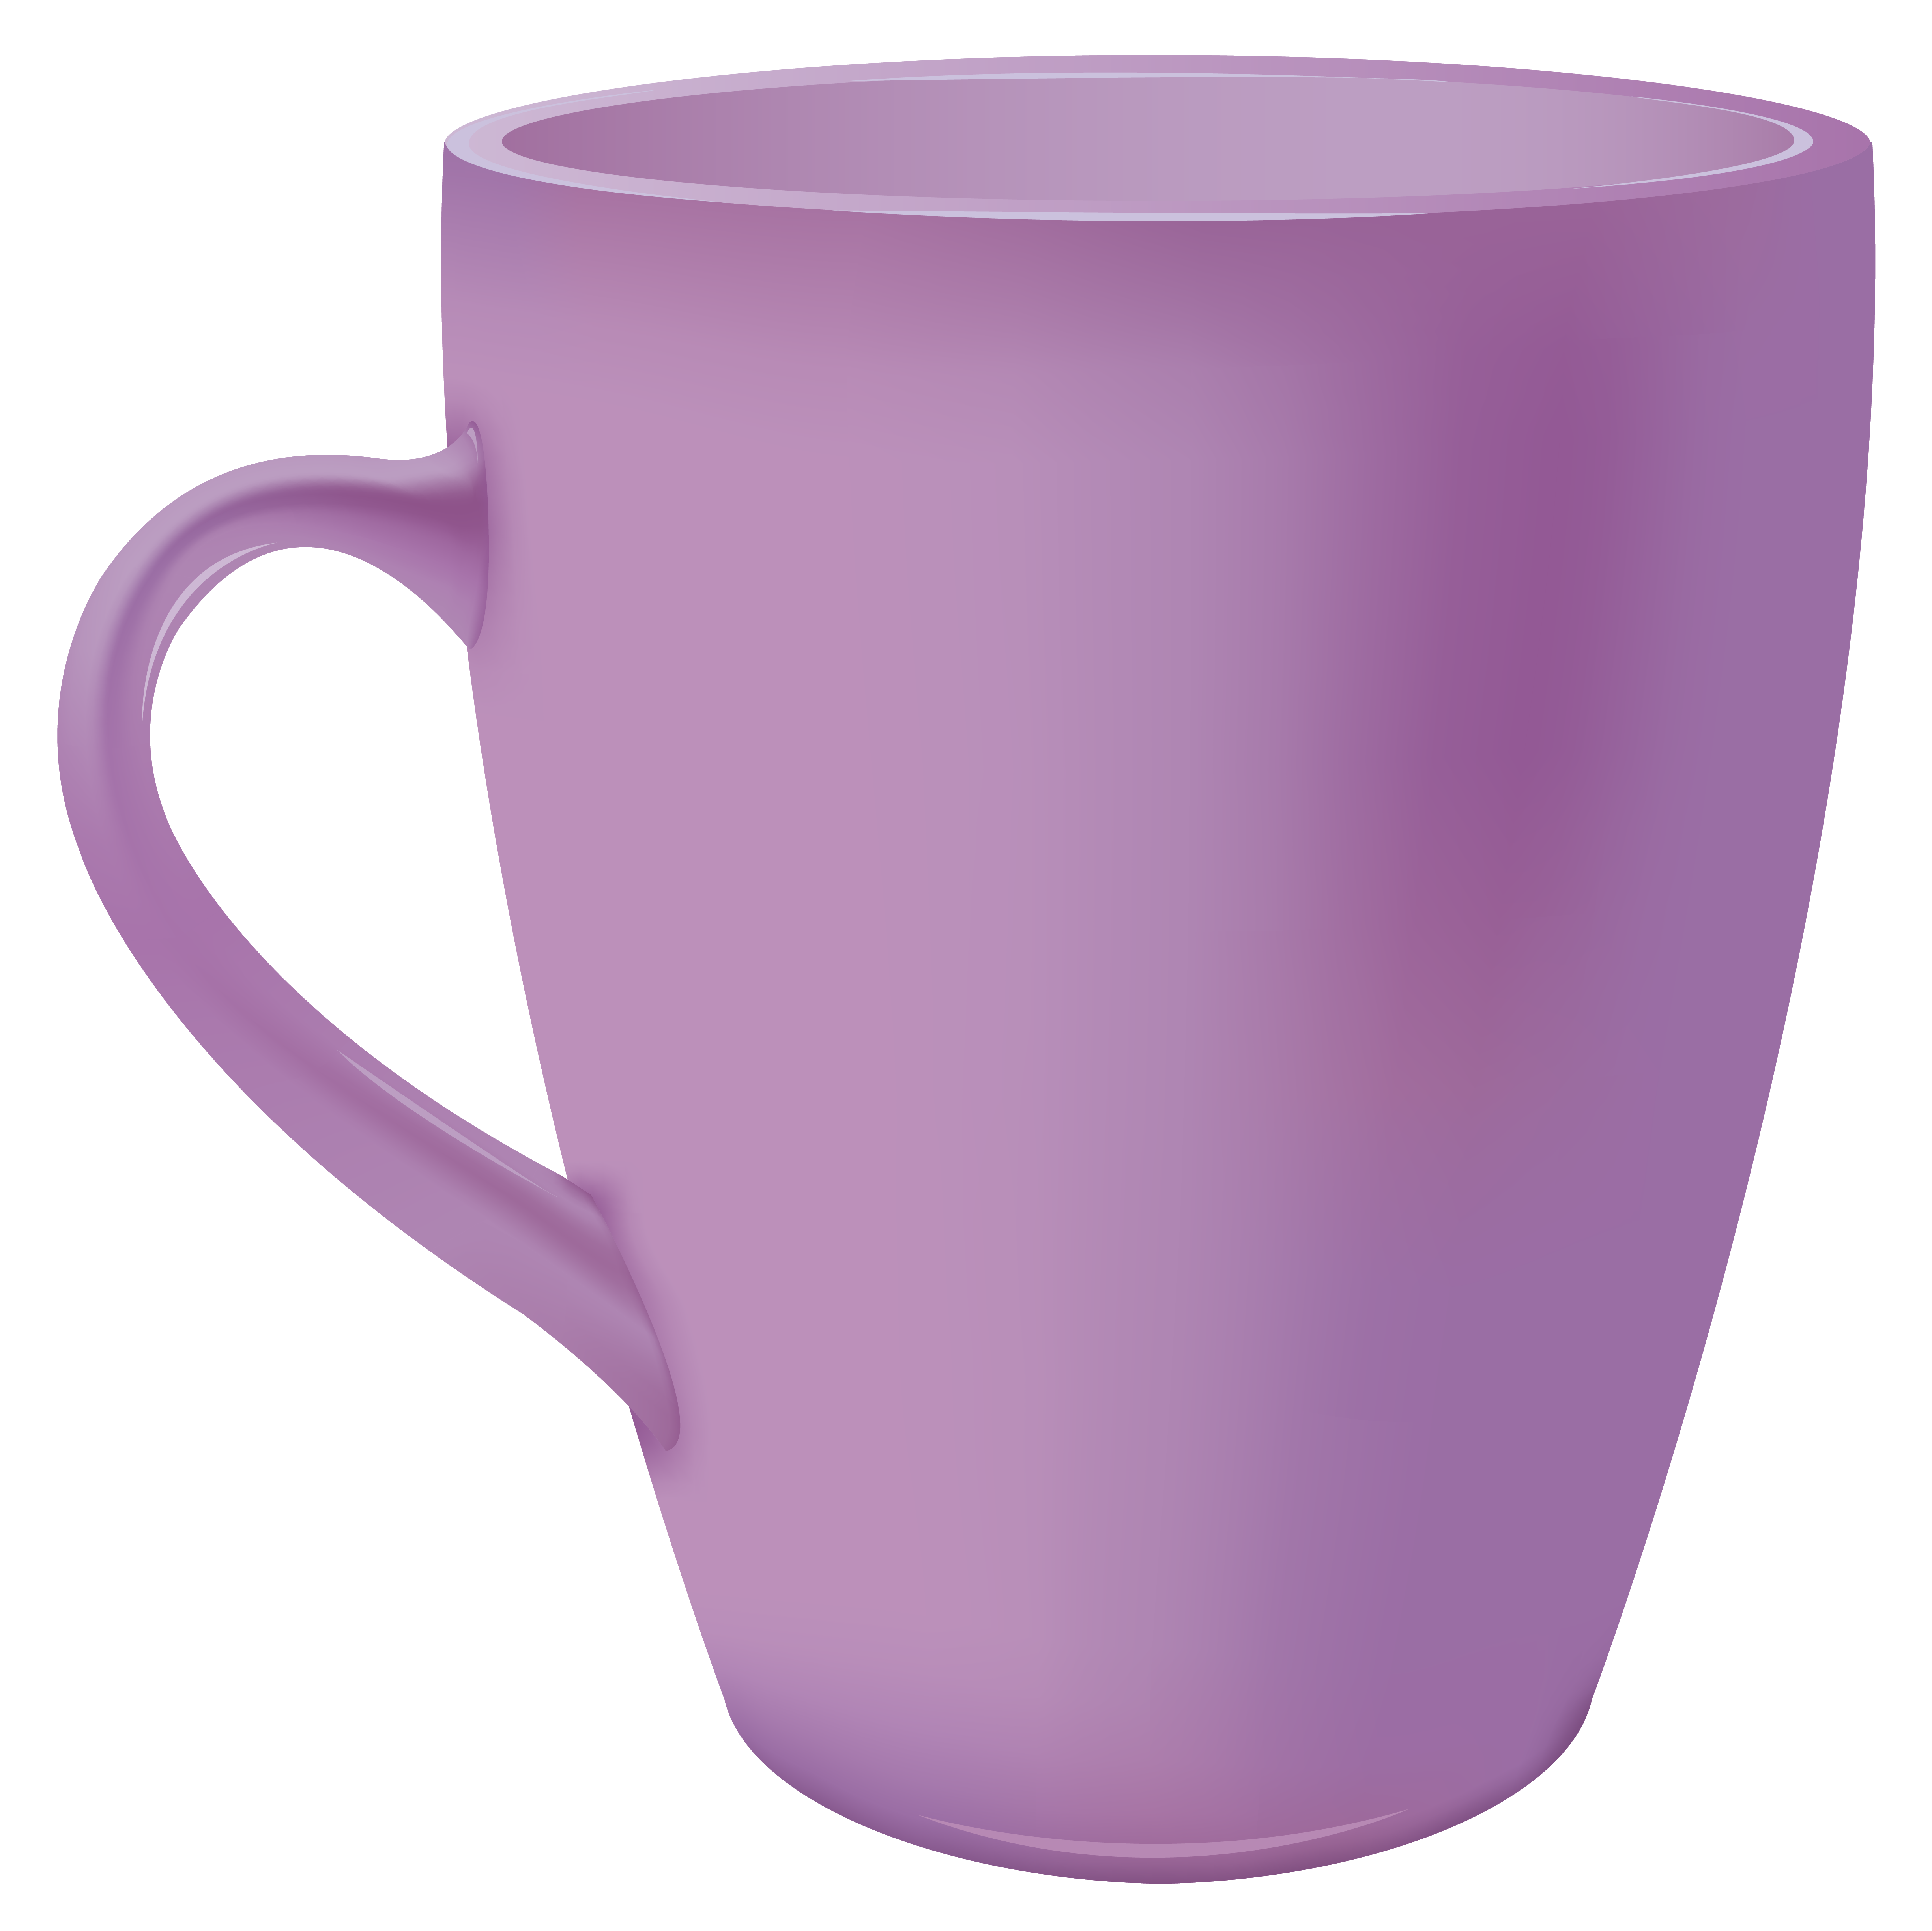 png royalty free Cup clipart. Violet png best web.